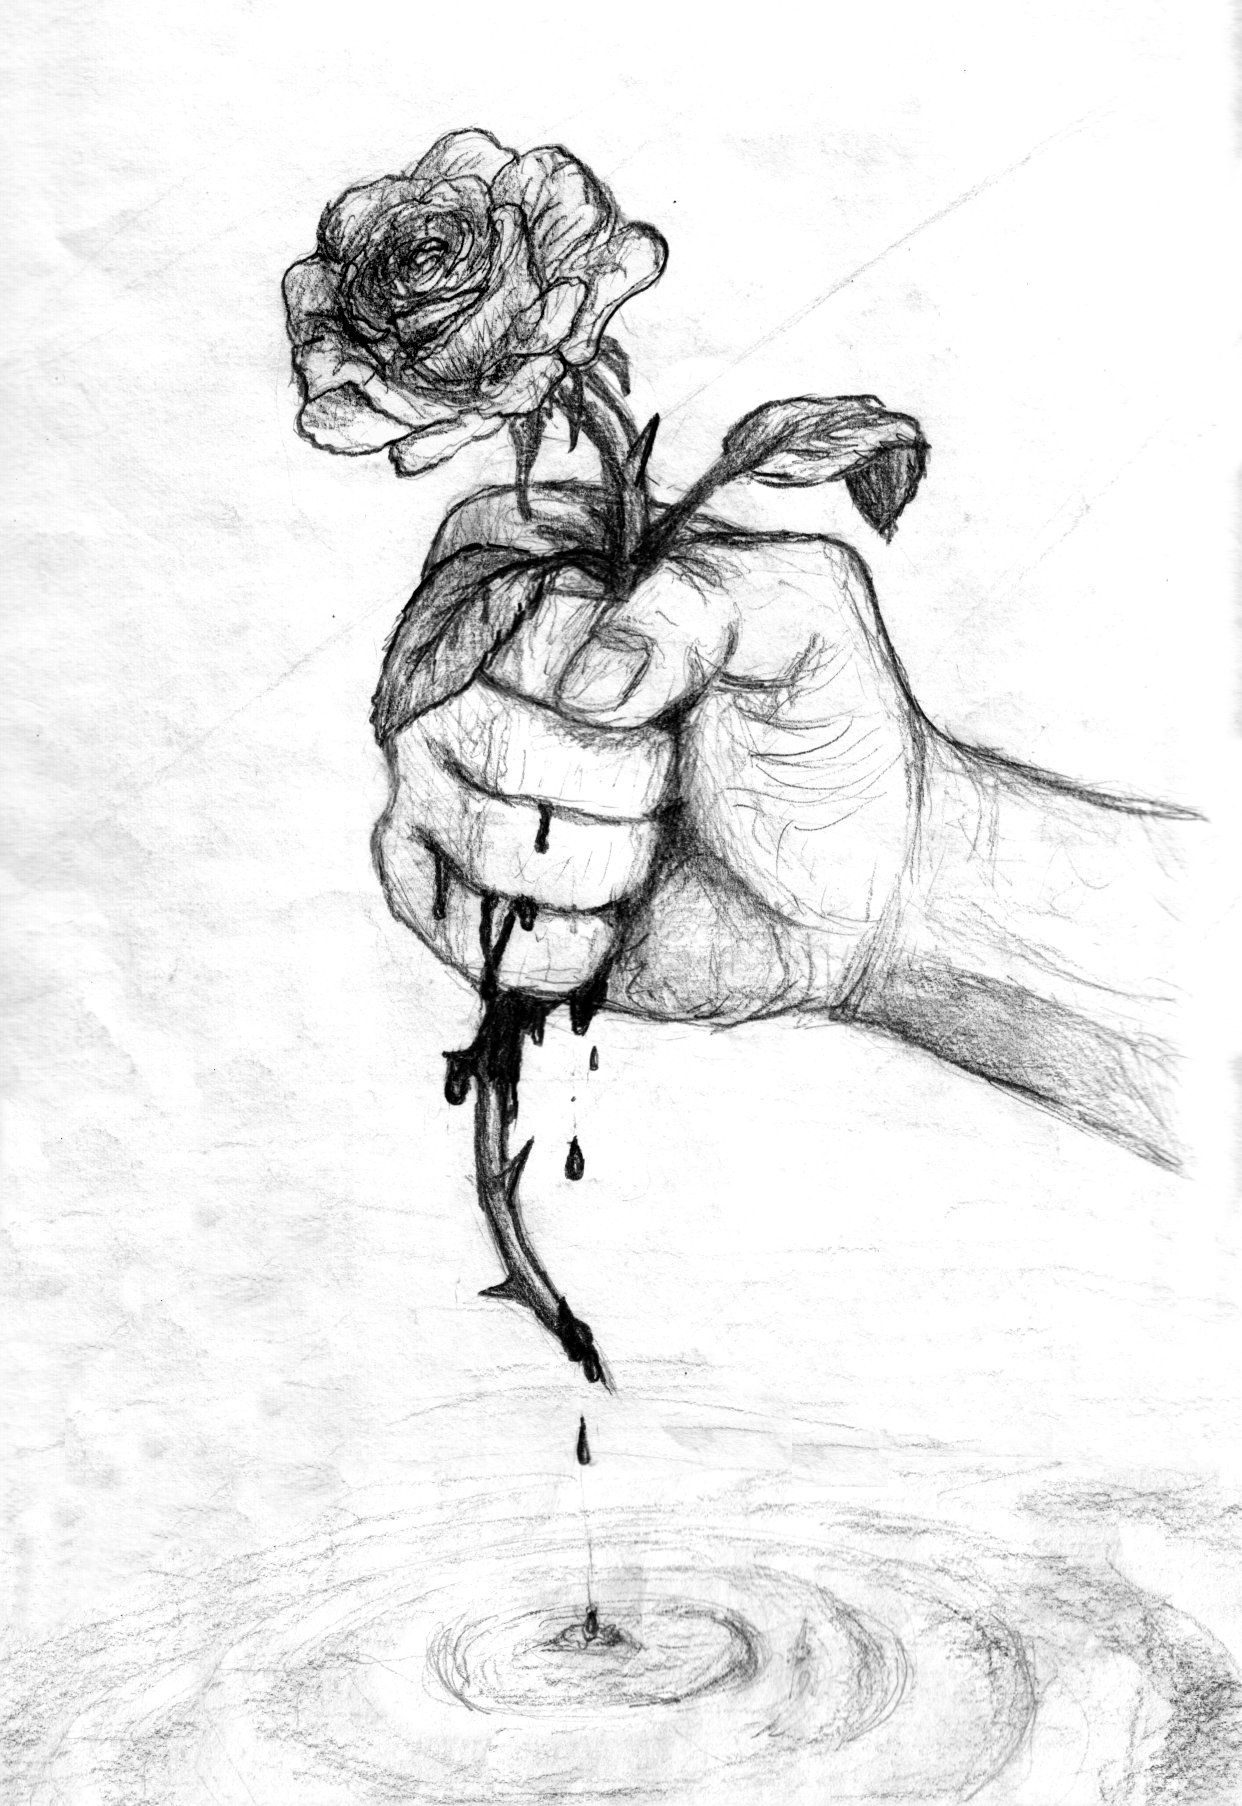 sad meaningful drawings - Google Search | stuff i'm gonna ...